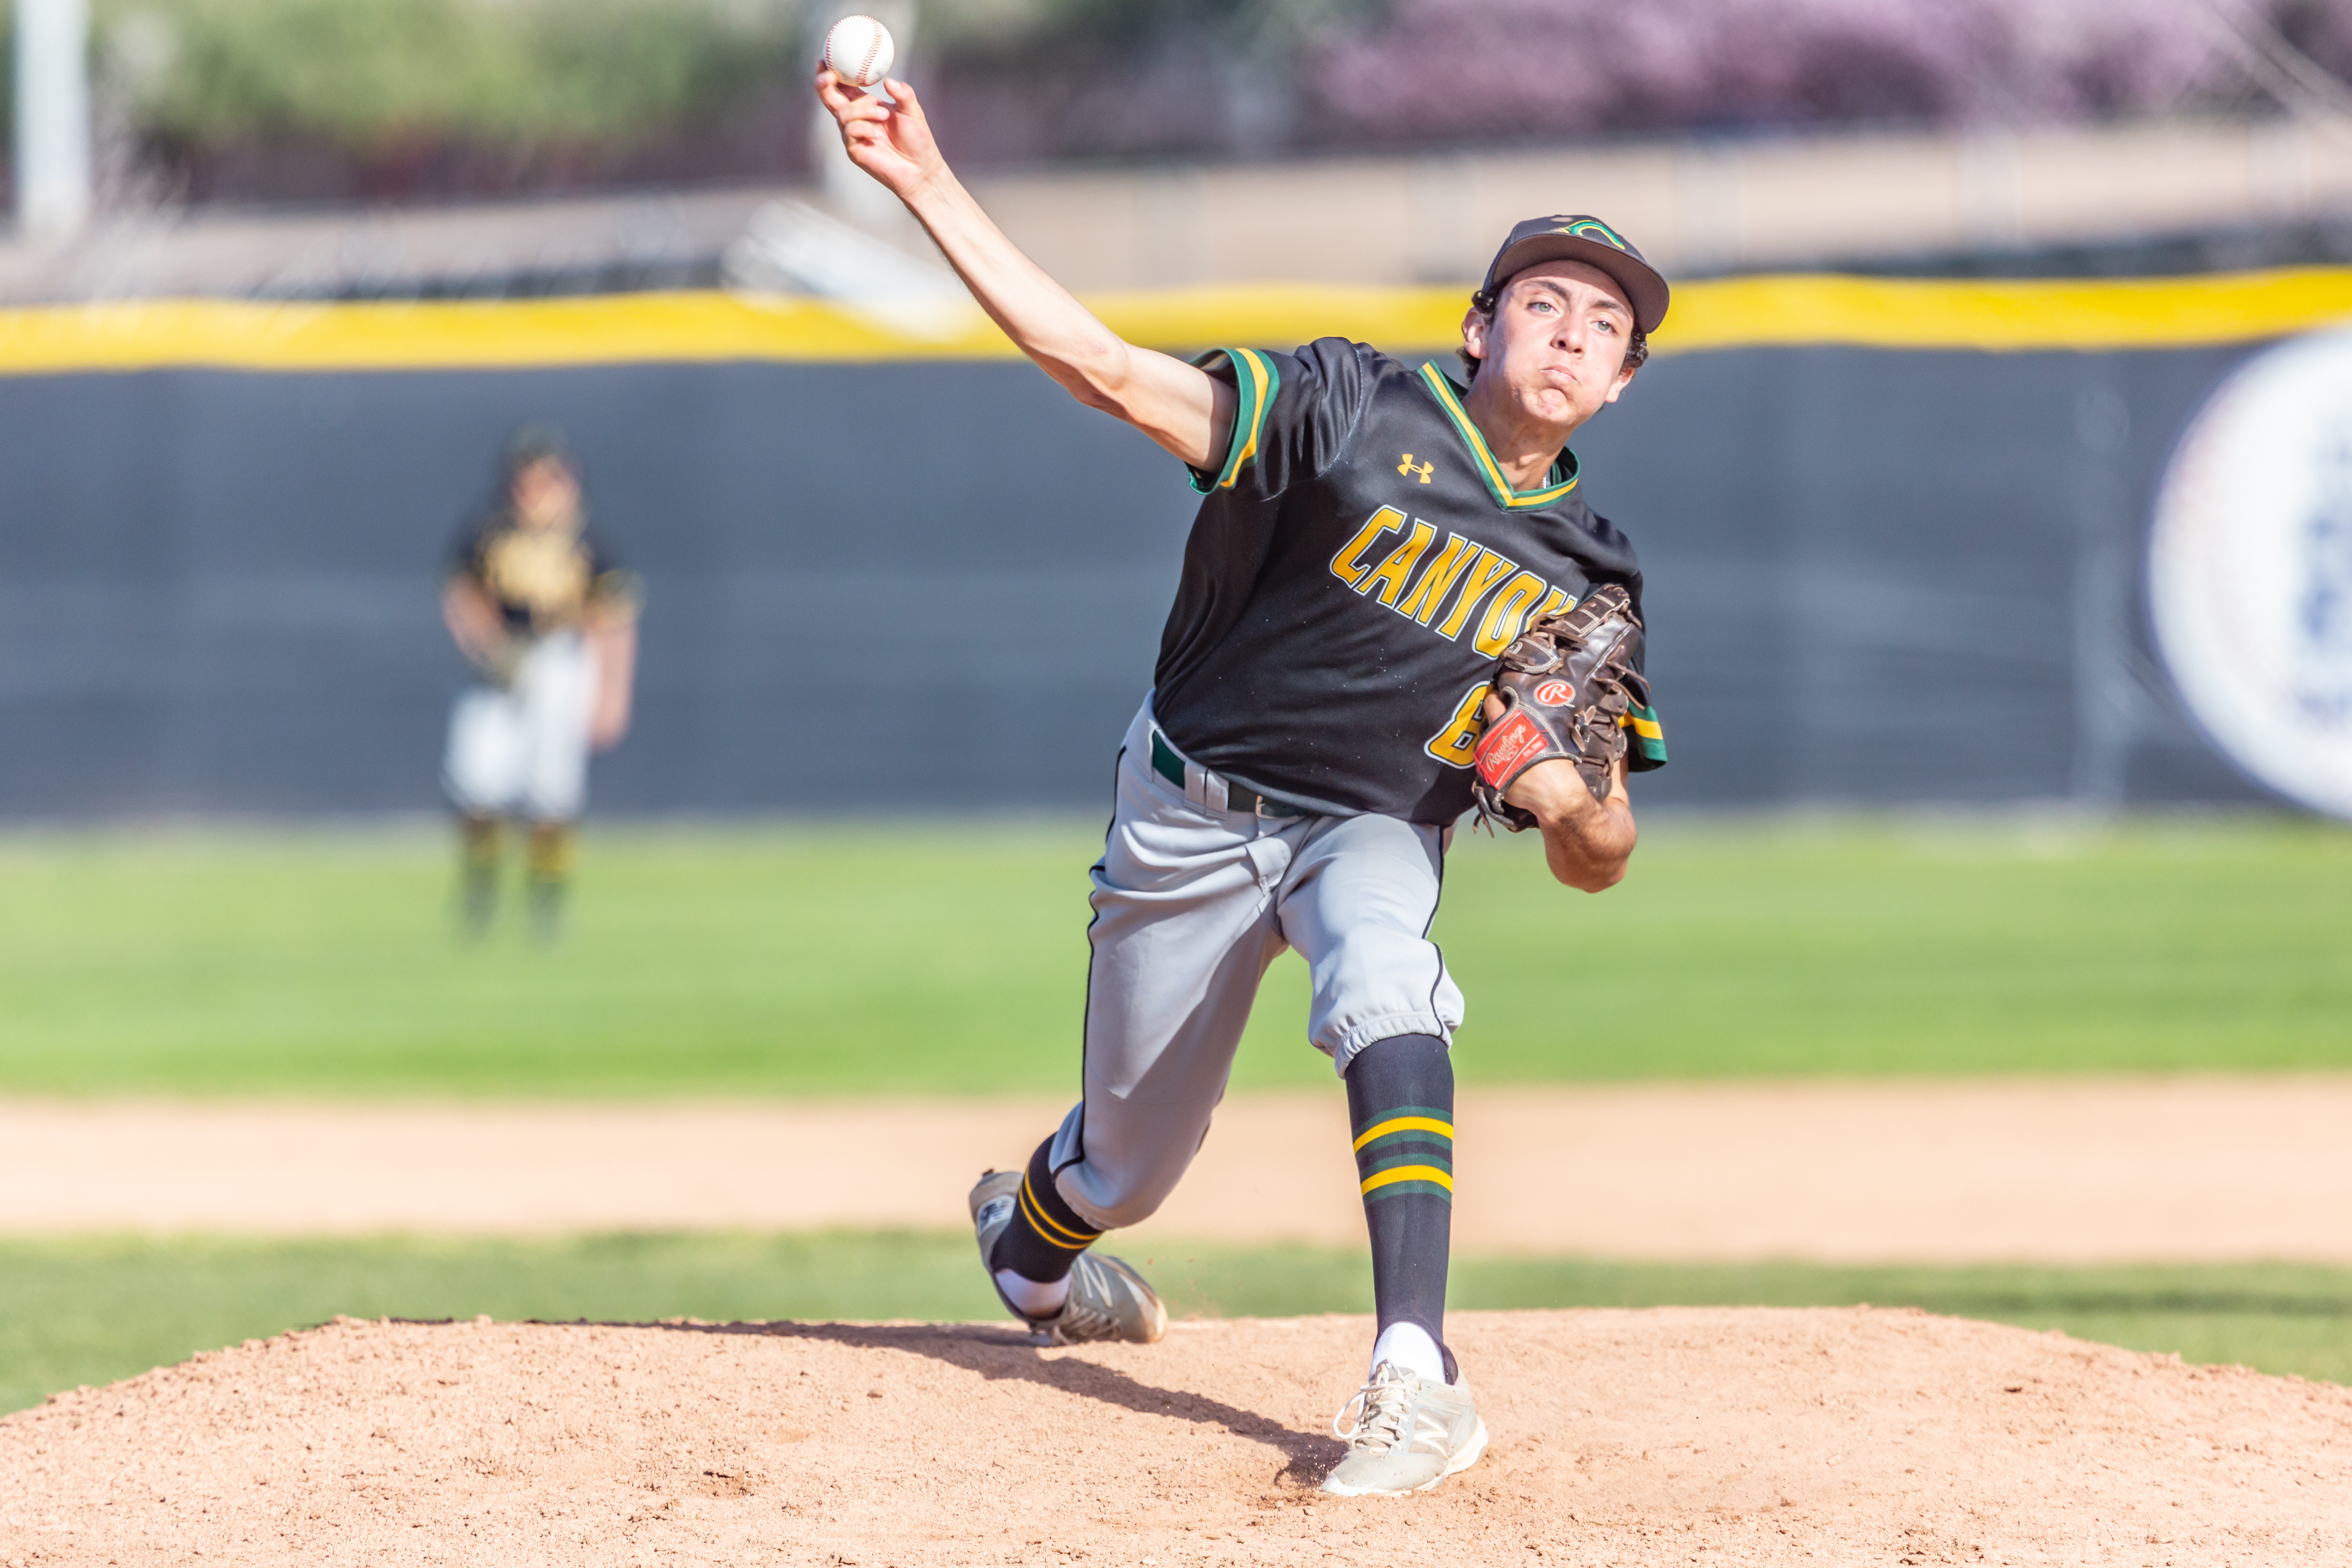 Strong pitching, clutch hitting powers Canyon past Saugus